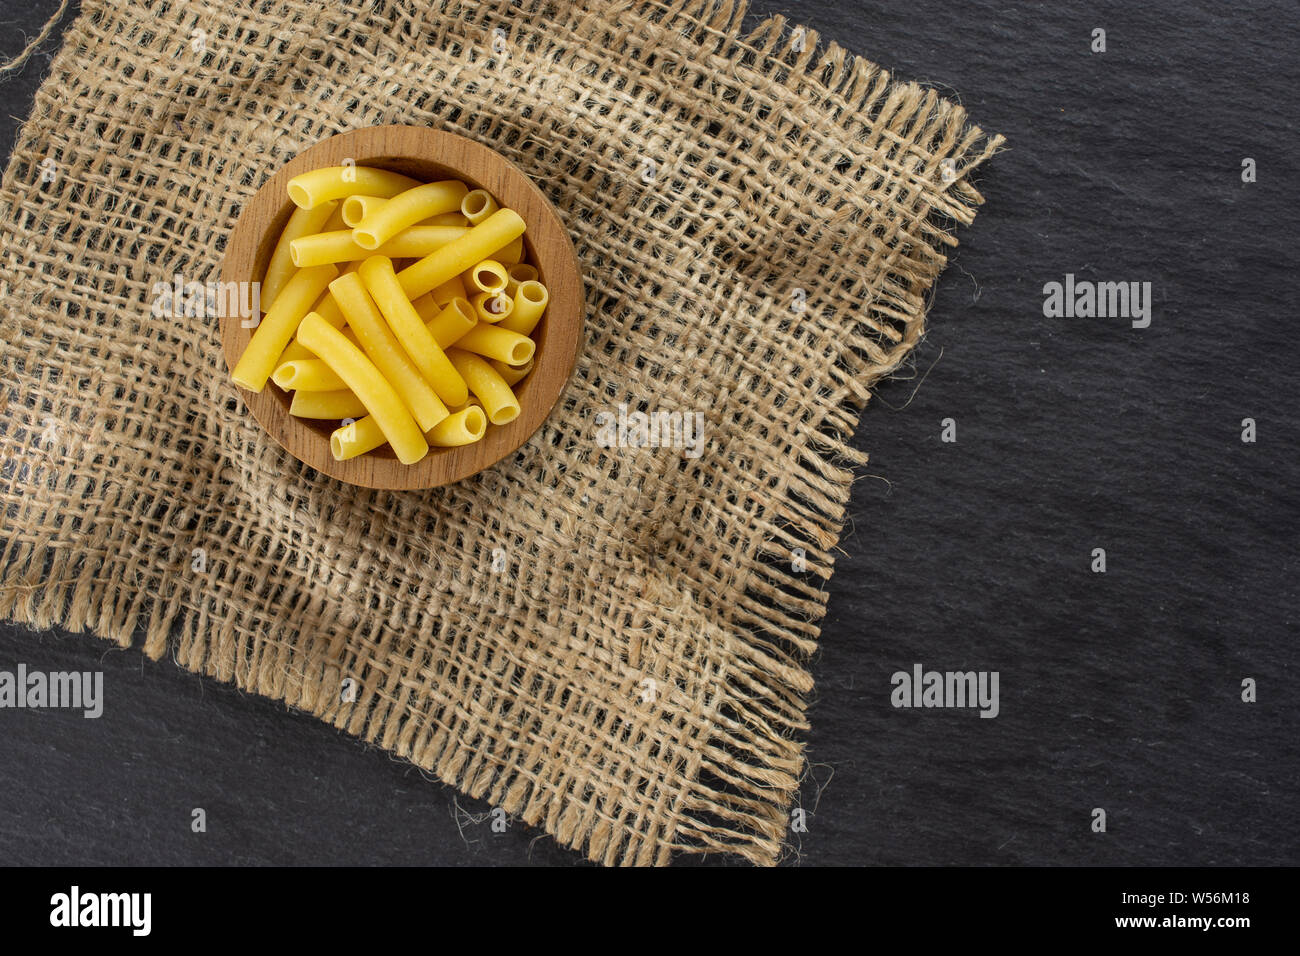 Lot of whole raw pasta macaroni in a wooden bowl with jute cloth flatlay on grey stone Stock Photo